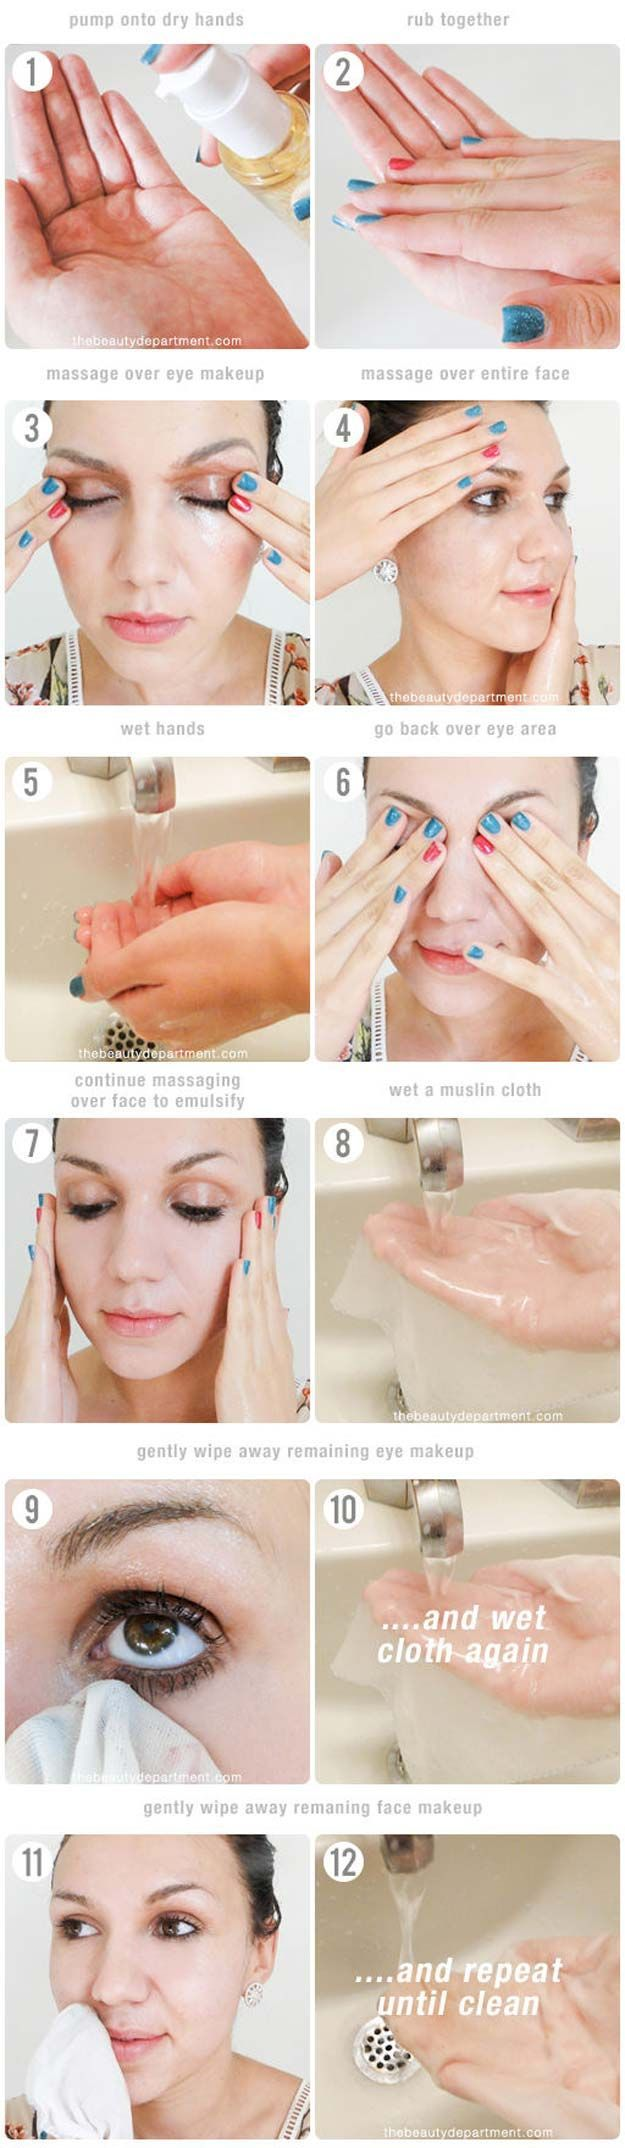 Best Beauty Tips For Teens - How to Use a Facial Cleansing Oil - The Best Products And DIY Make Up Ideas For Losing Weight And Using Eye Makeup For Looking Cute When You Go Back To School. Makeup Ideas Beauty Tips Every Teen Should Know. Beauty Tips For A Faster Morning Routine And Homemade DIY Beauty Tips And Tricks For Teenage Girls. Some Beauty Tips For Face And Glowing Skin And Simple Beauty Tips To Fight Acne And Prevent Breakouts And Blackheads. Get Rid Of Pimples And Acne Scars…